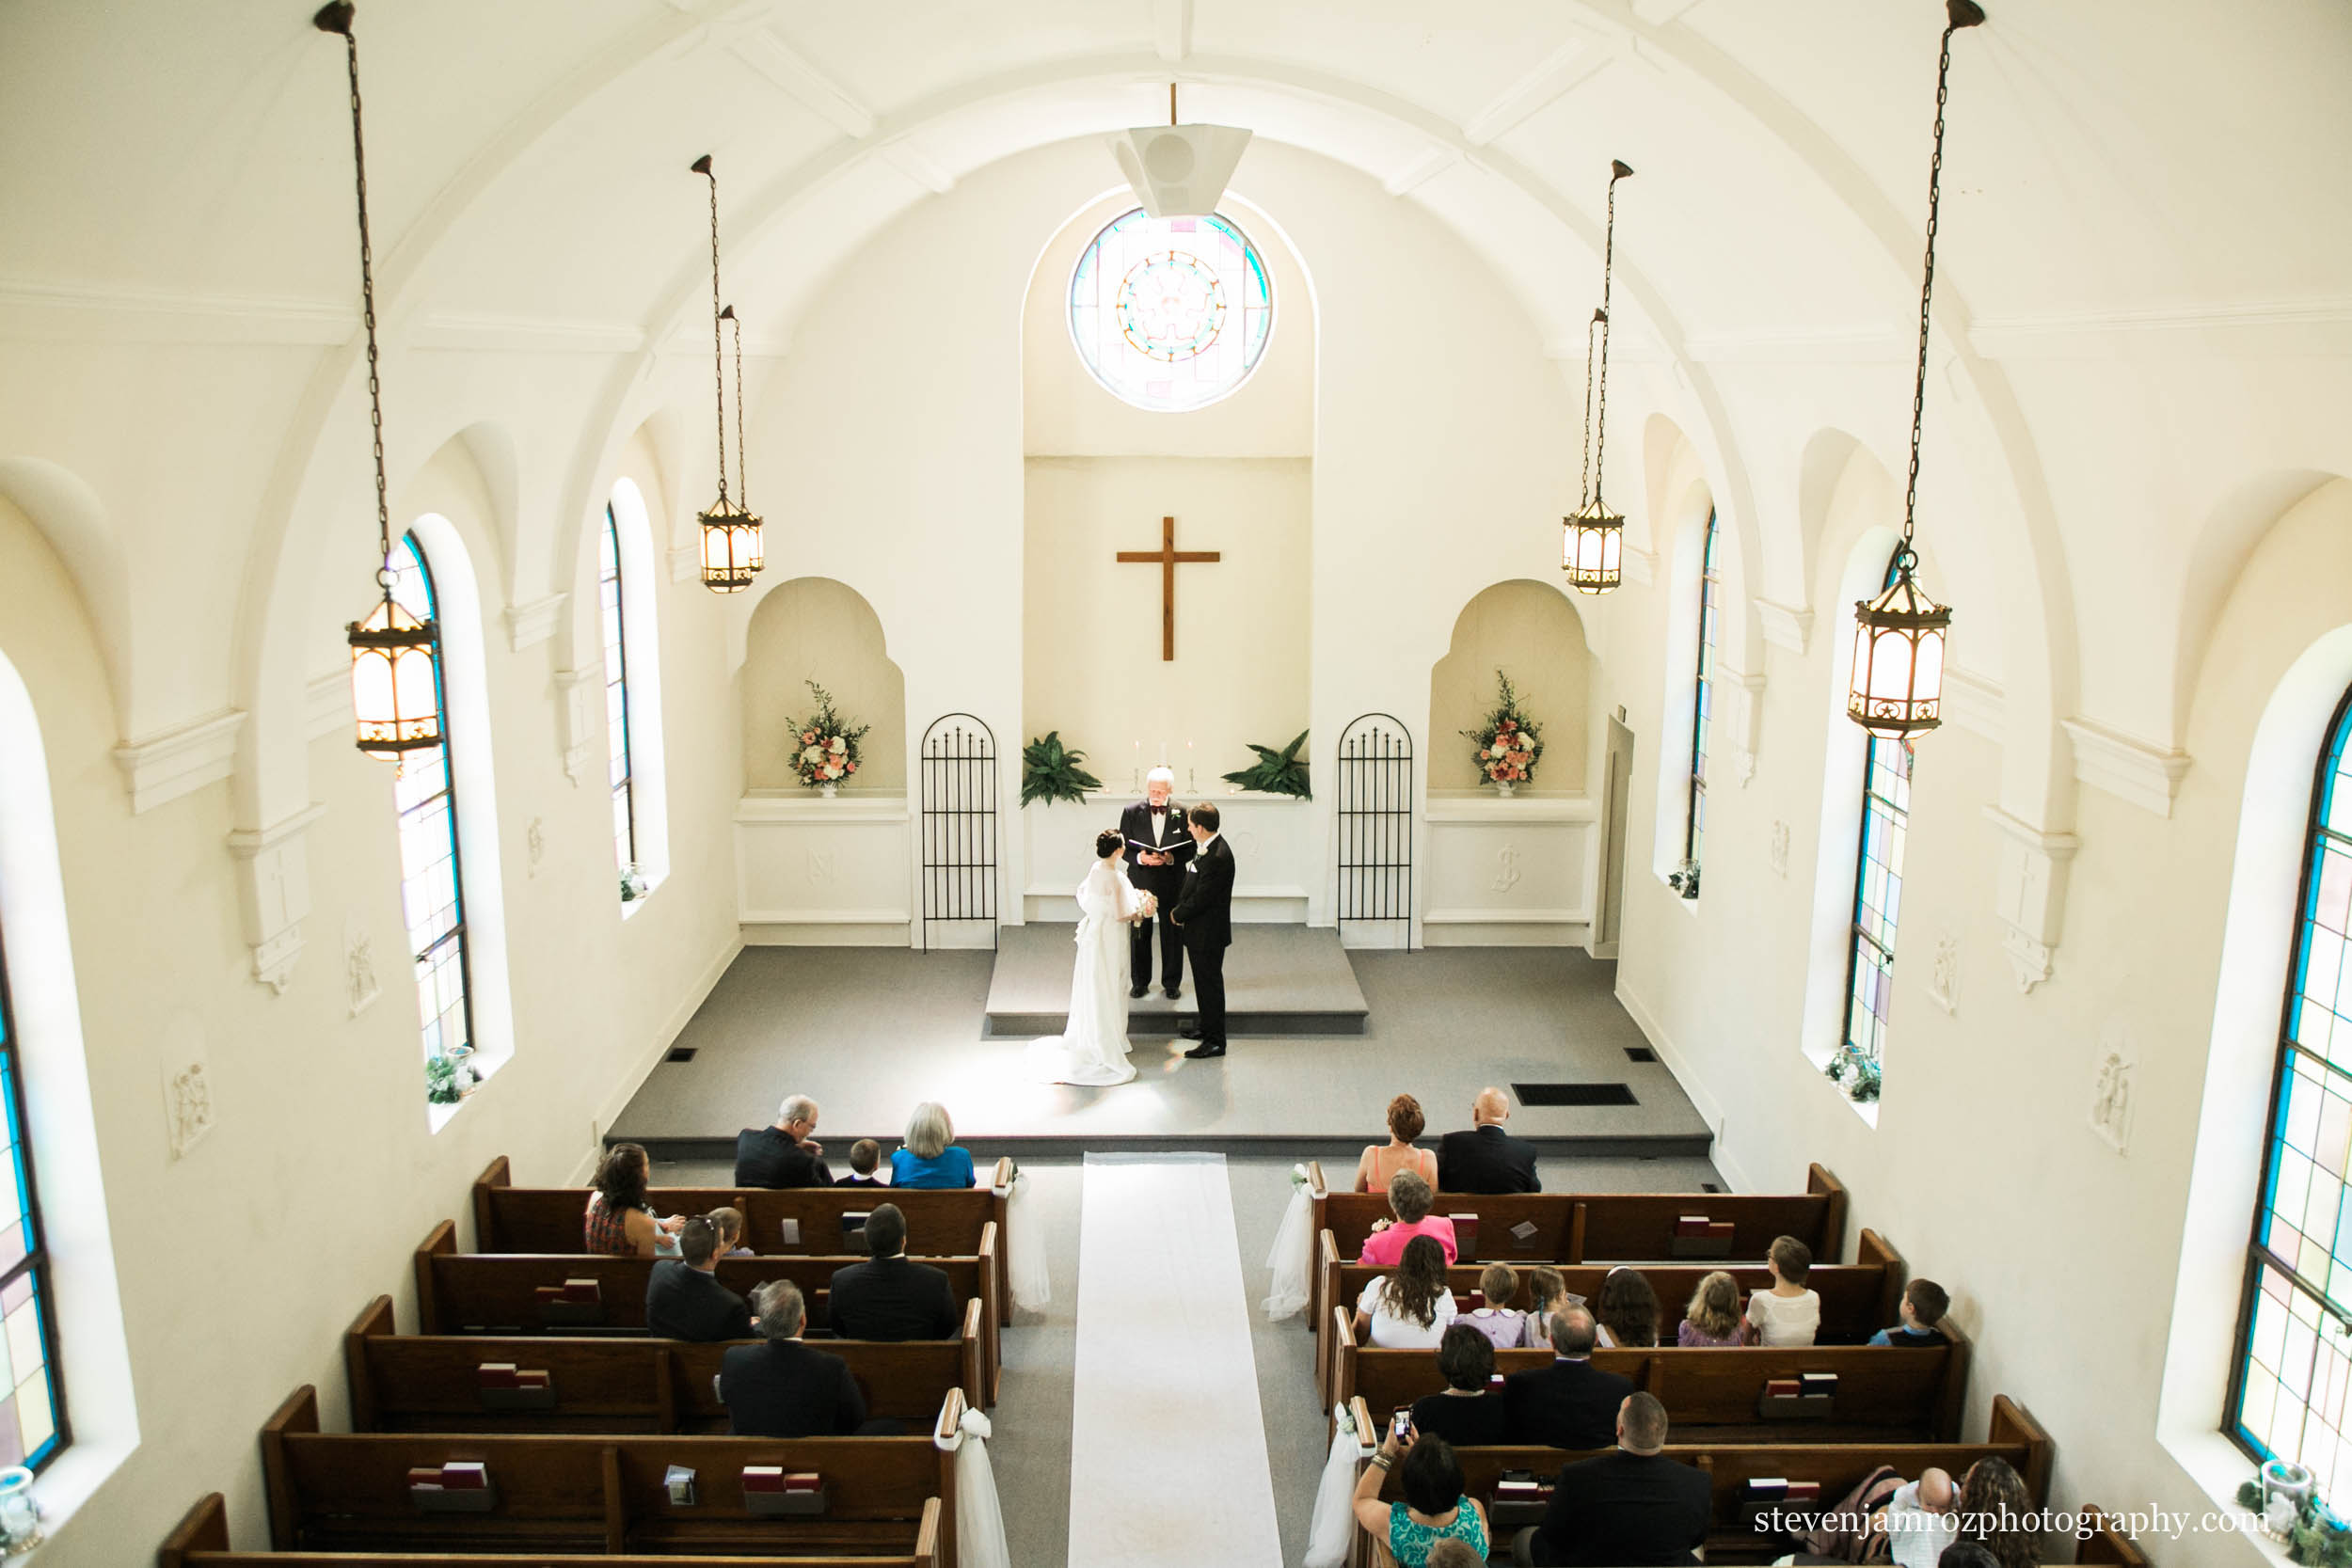 stone-chapel-church-wedding-wake-forest-steven-jamroz-photography-0623.jpg